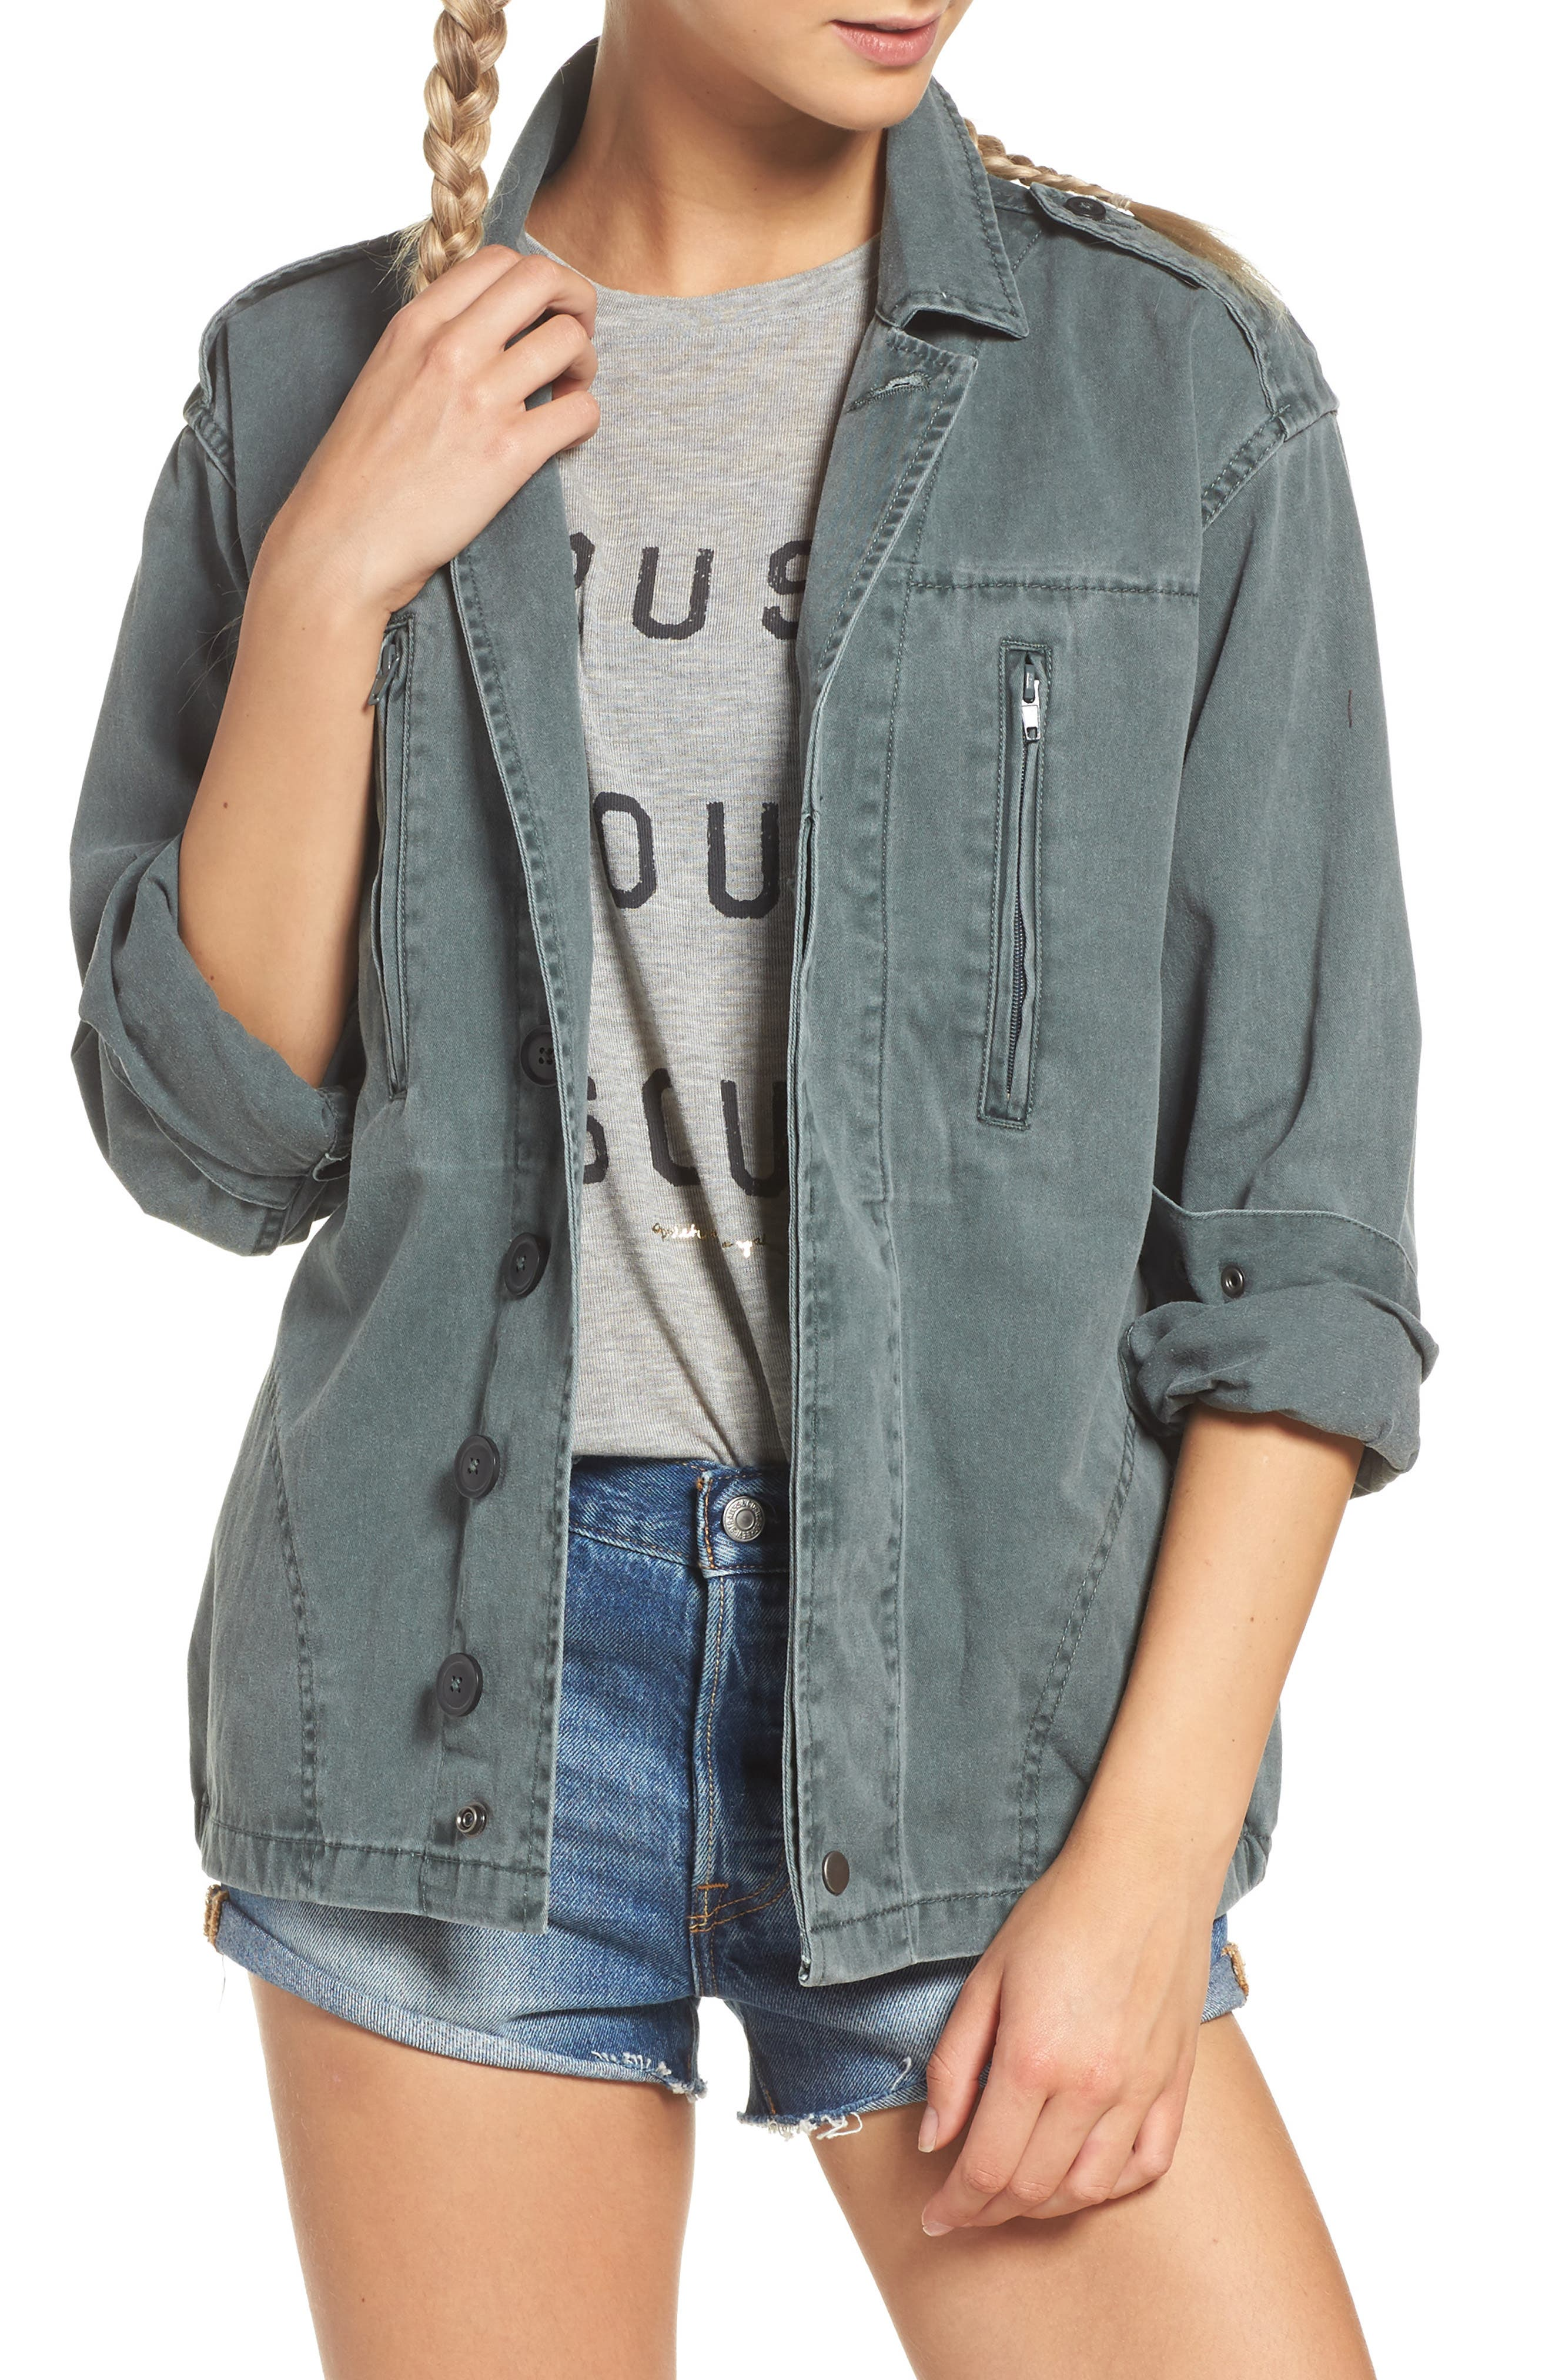 Stay Wild Gypsy Child Amy Jacket,                         Main,                         color,